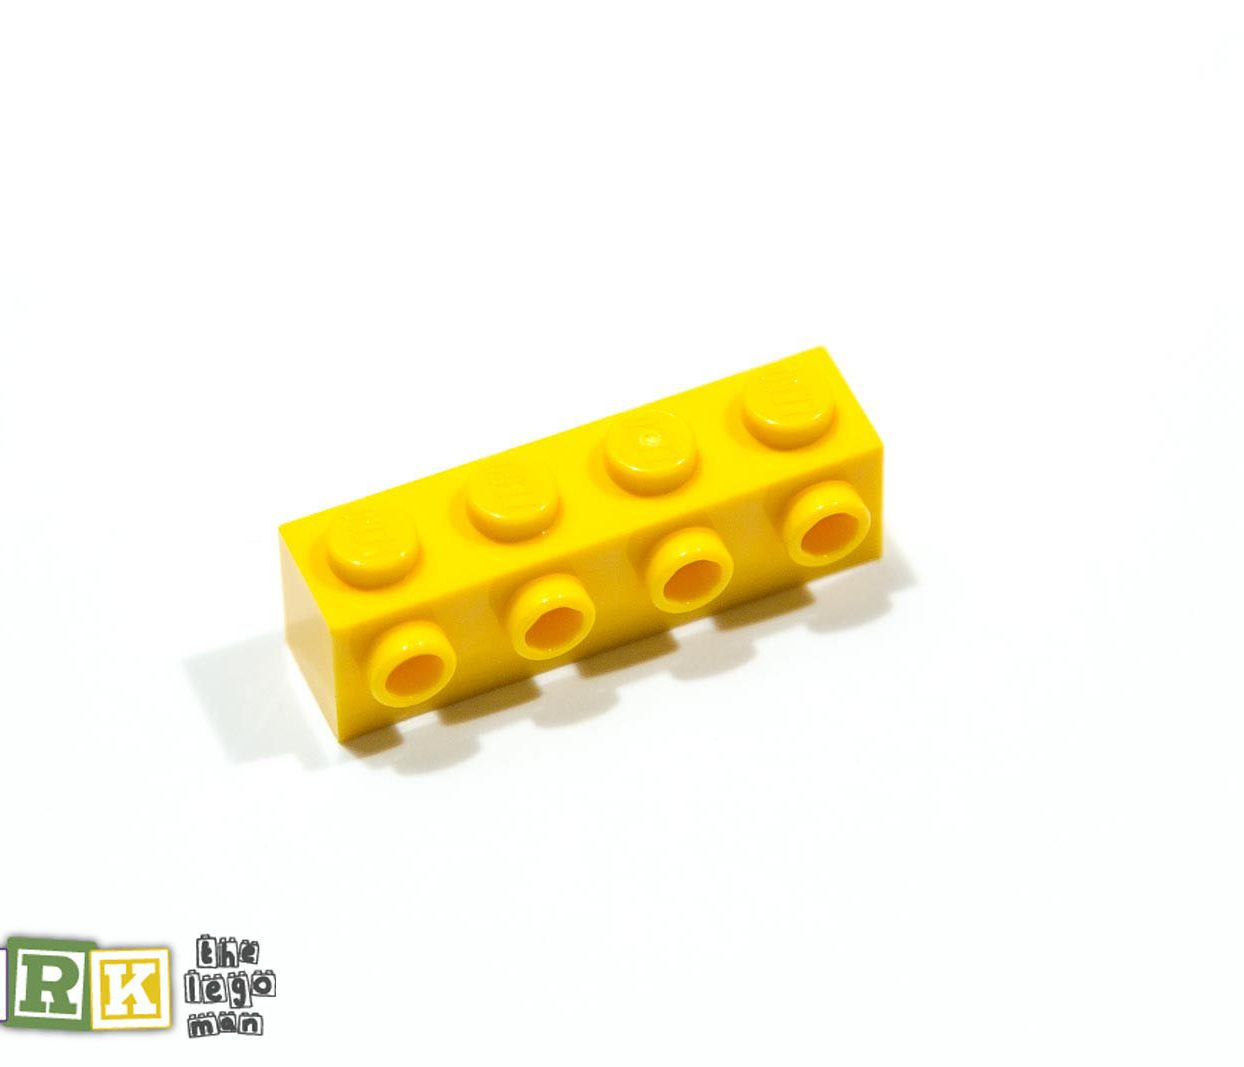 NEW Lego 4164073 30414 1x Bright Yellow 1x4 Brick with 4 Knobs